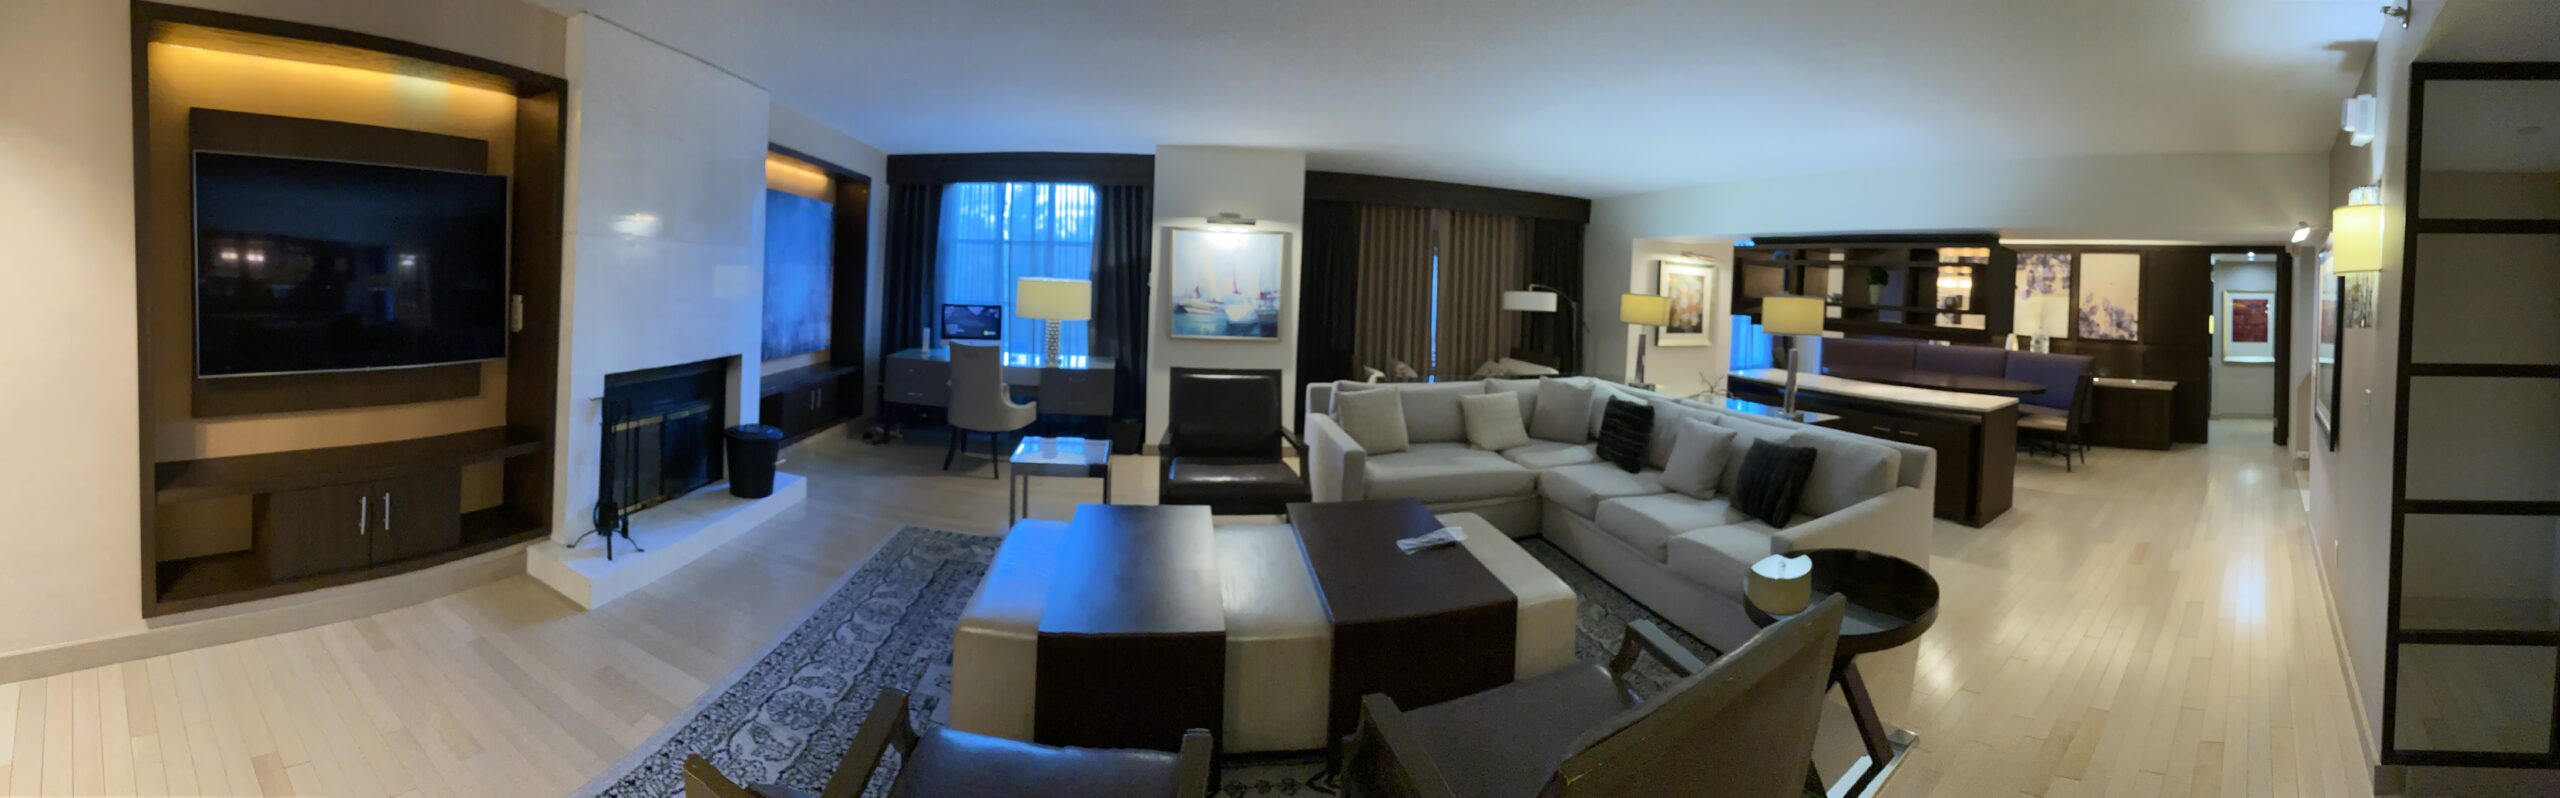 hyatt regency greenwich presidential suite